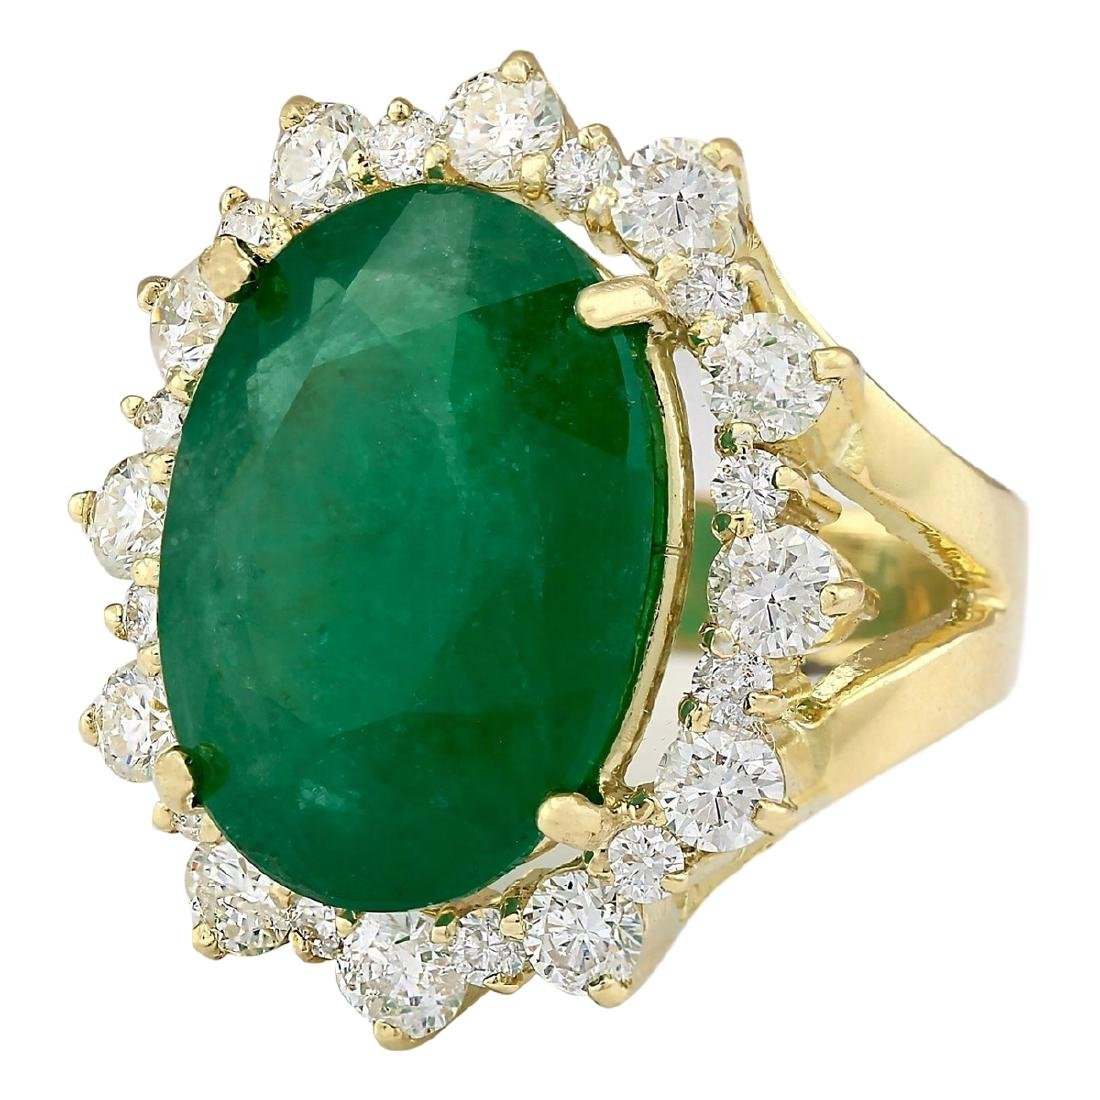 18.59 CTW Natural Emerald And Diamond Ring In 18K - 2